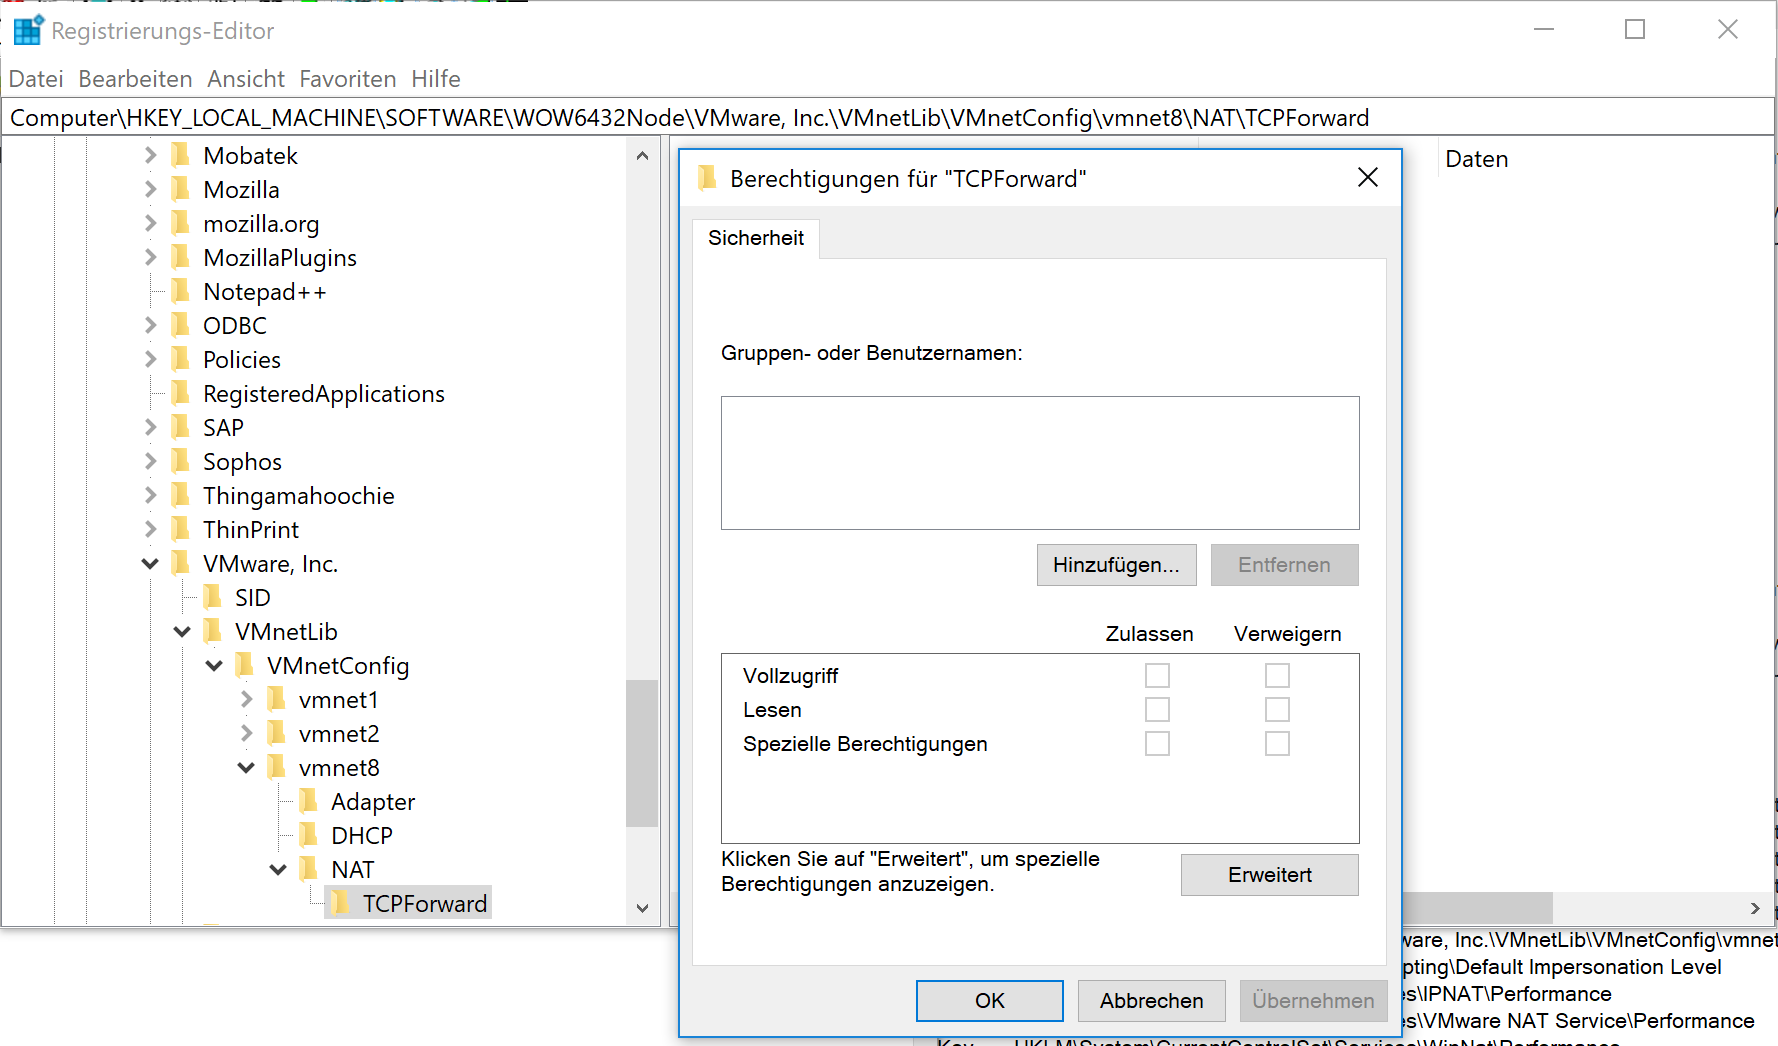 vagrant 2 0 1, VMware 14 1 0: Failed to add NAT port entry: Zugriff